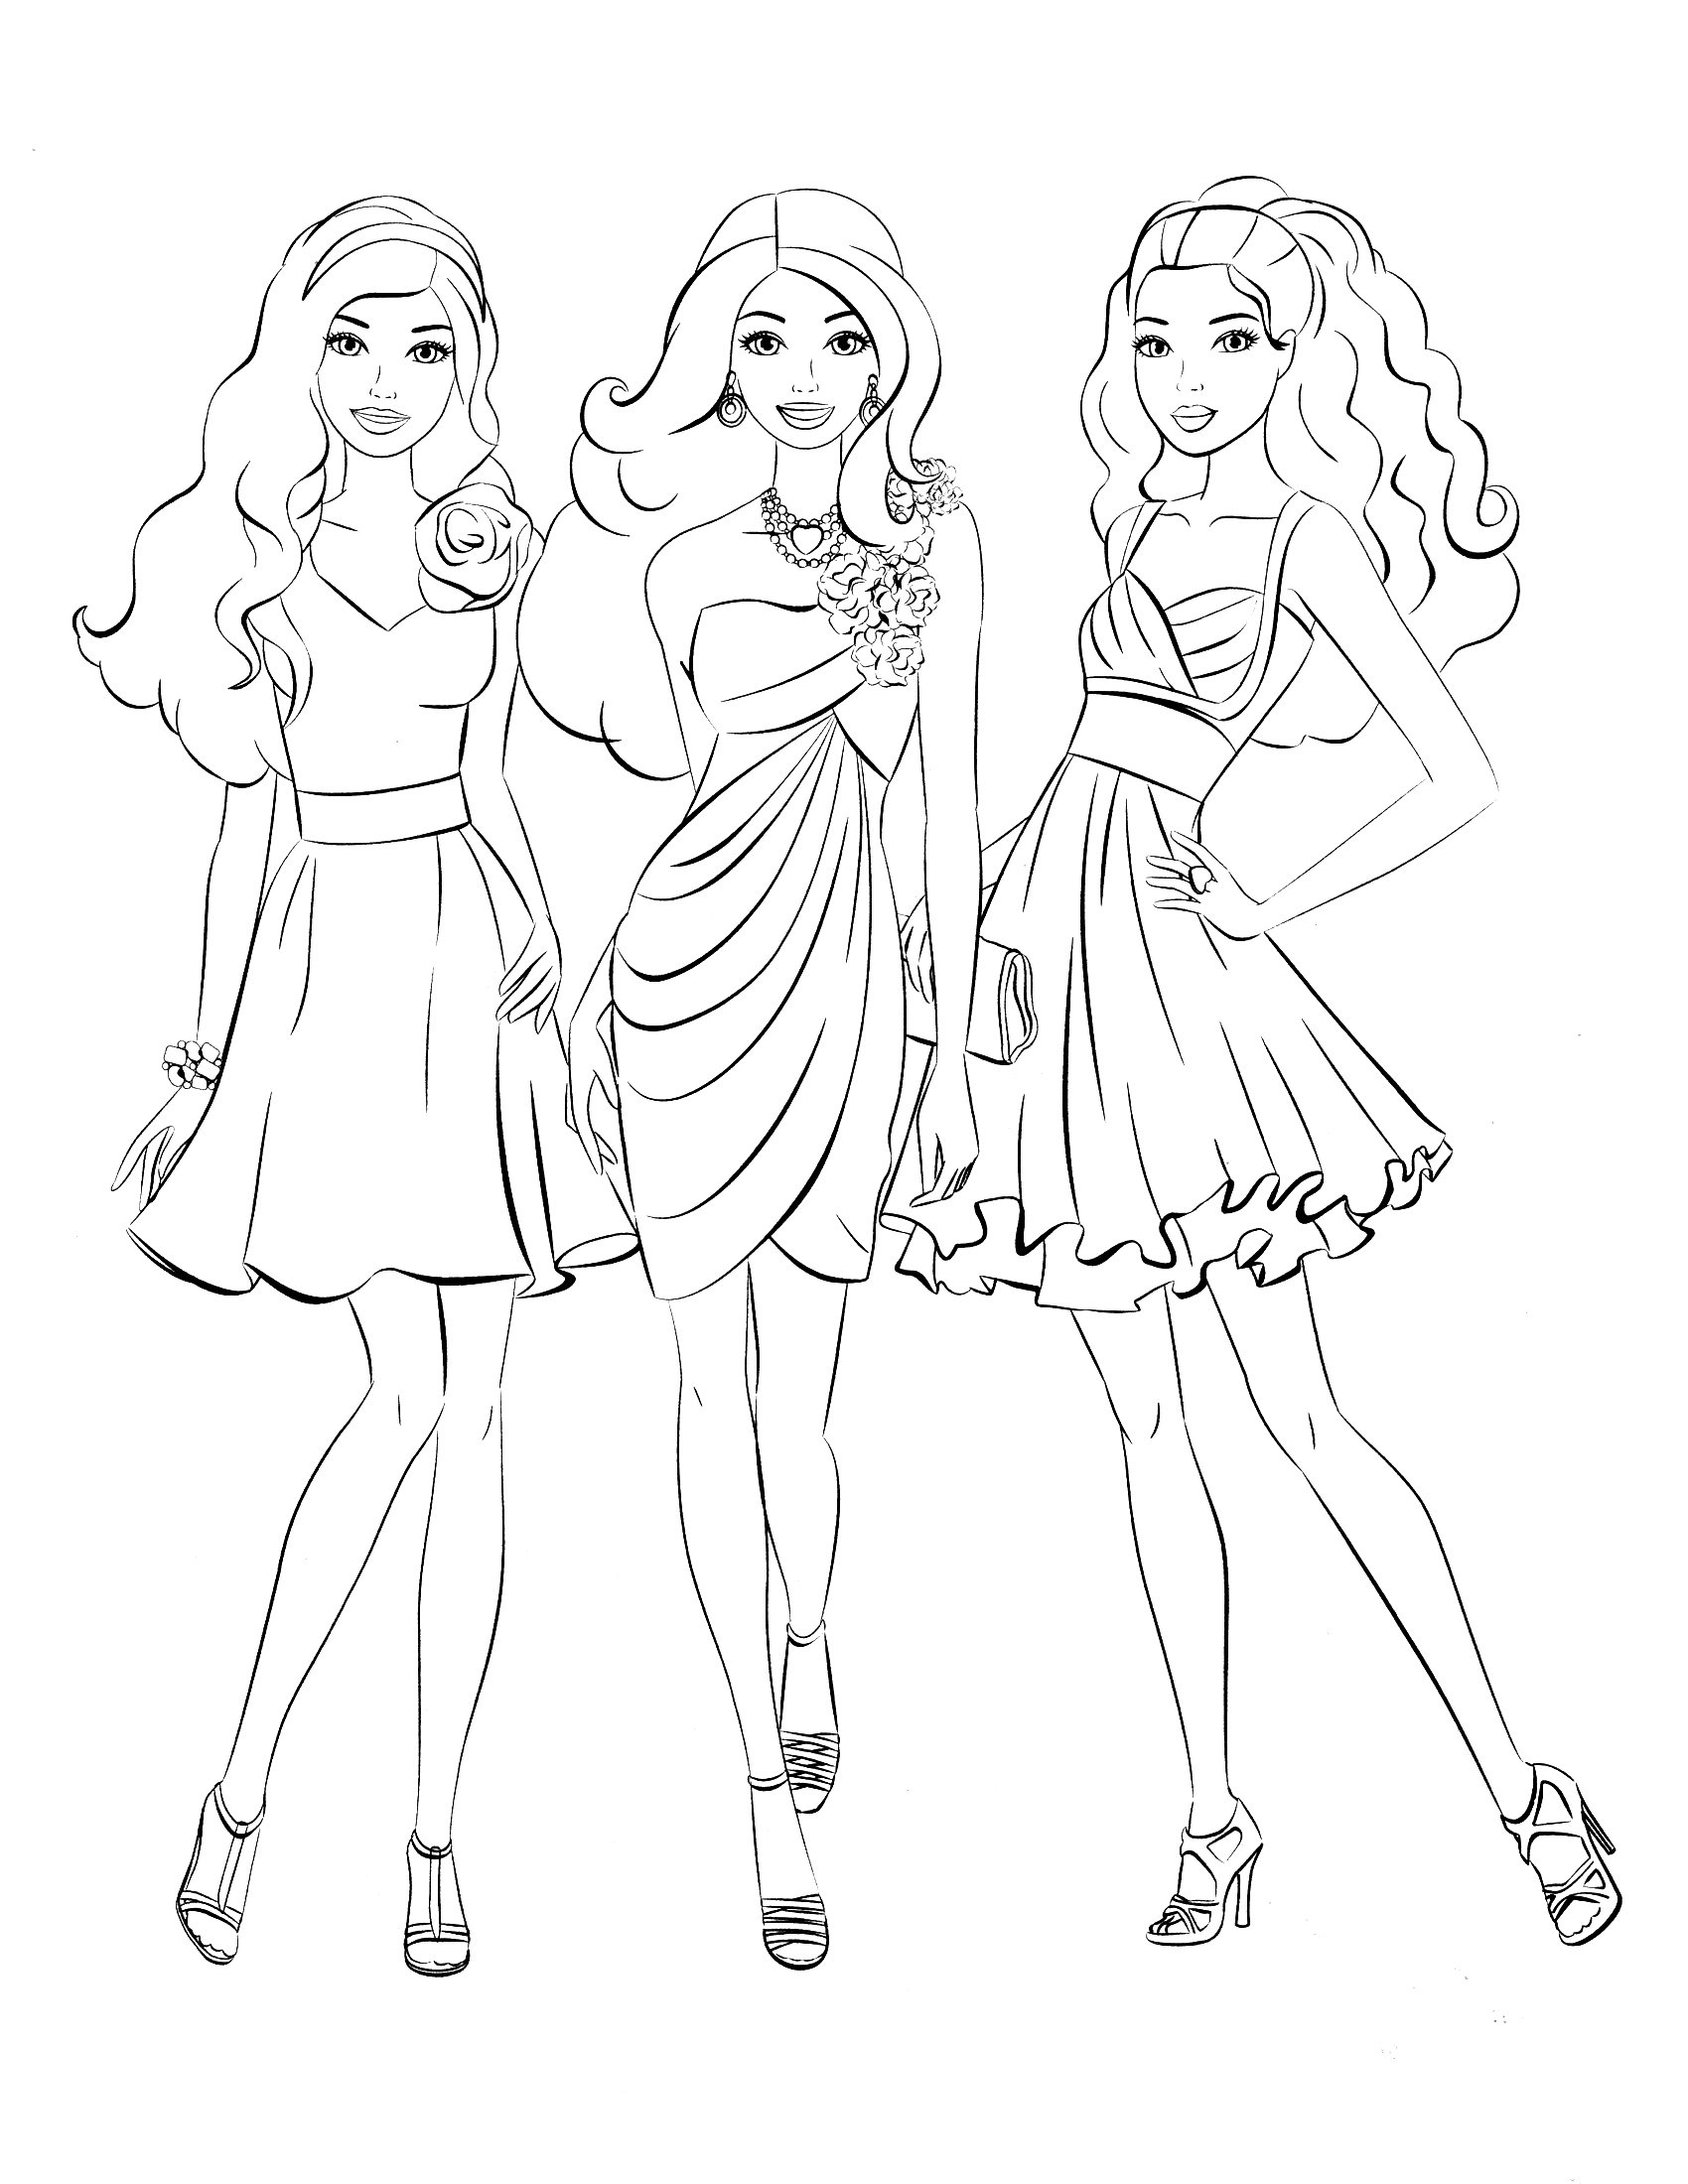 Best Barbie Coloring Pages Free Printable 742 with Bertmilne Gallery Of Printable Puter Coloring Pages Collection